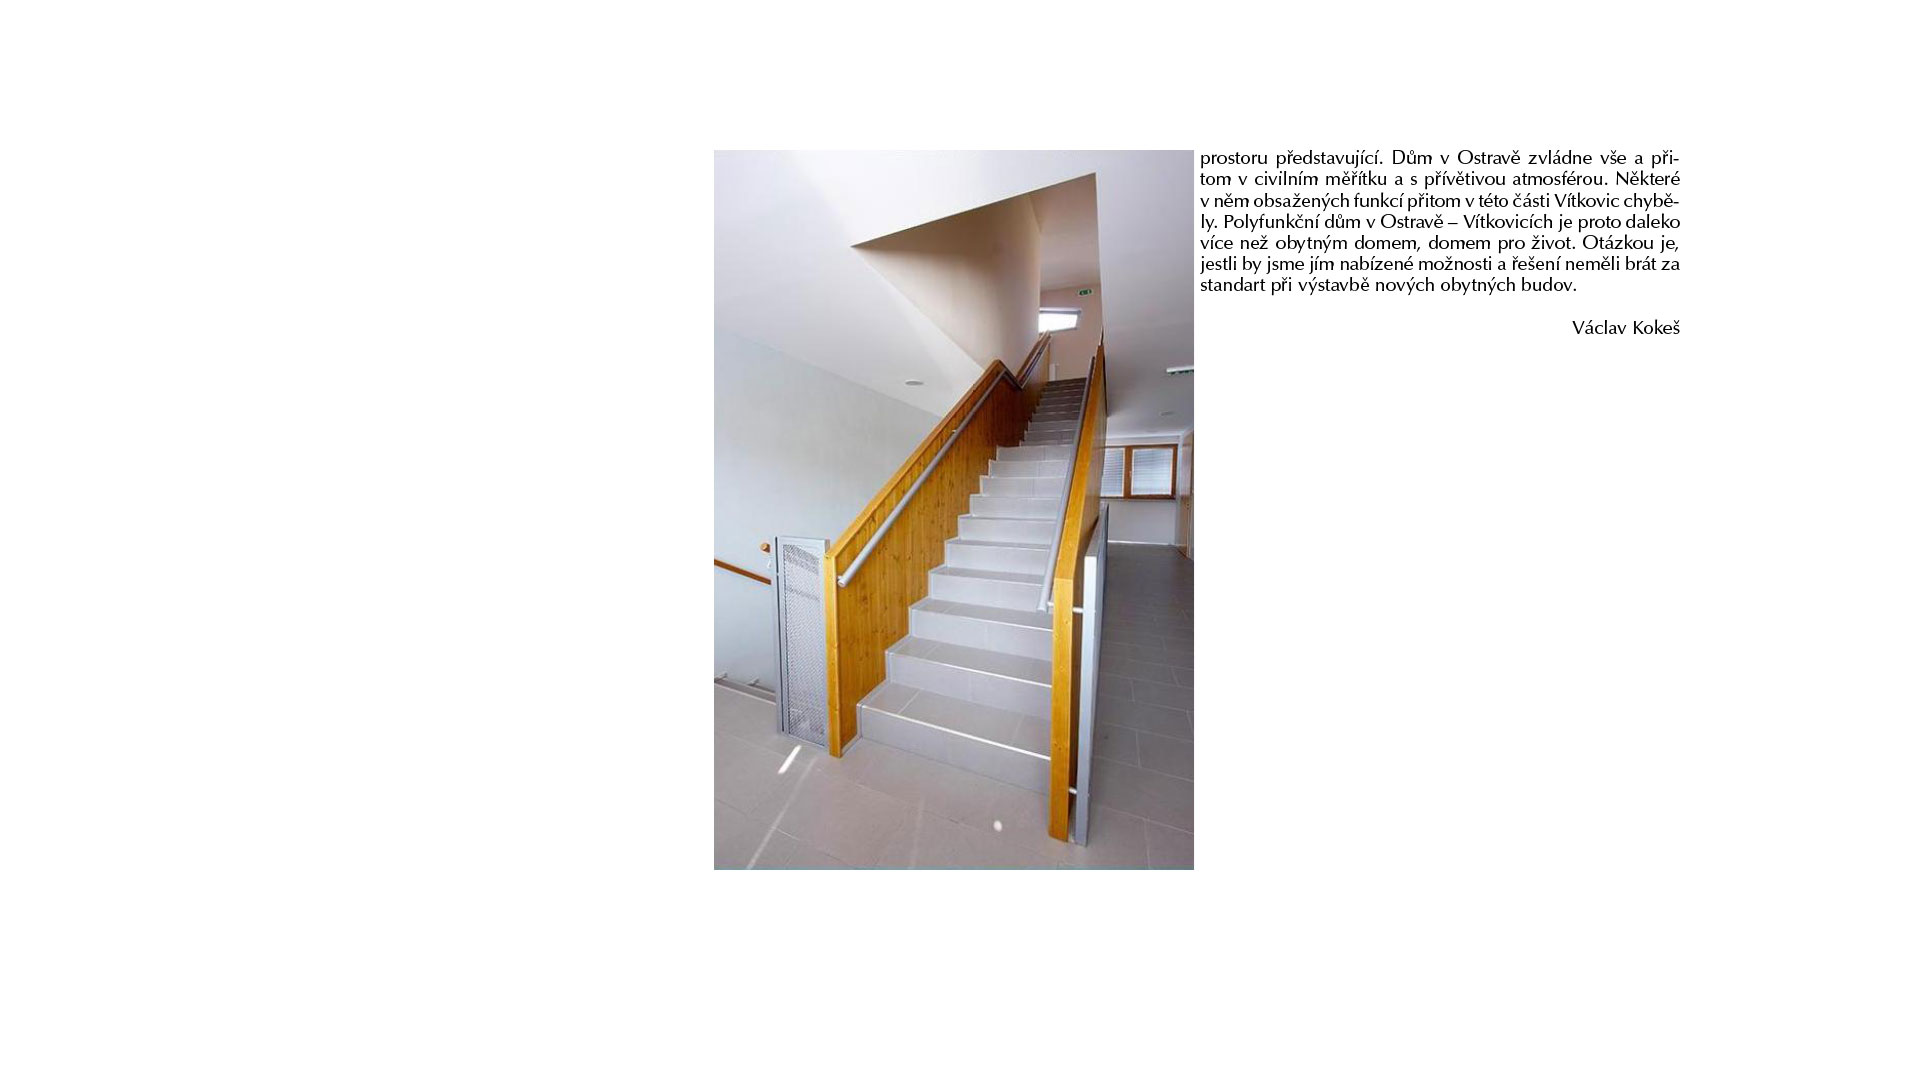 Contemporary Czech Architecture page 79